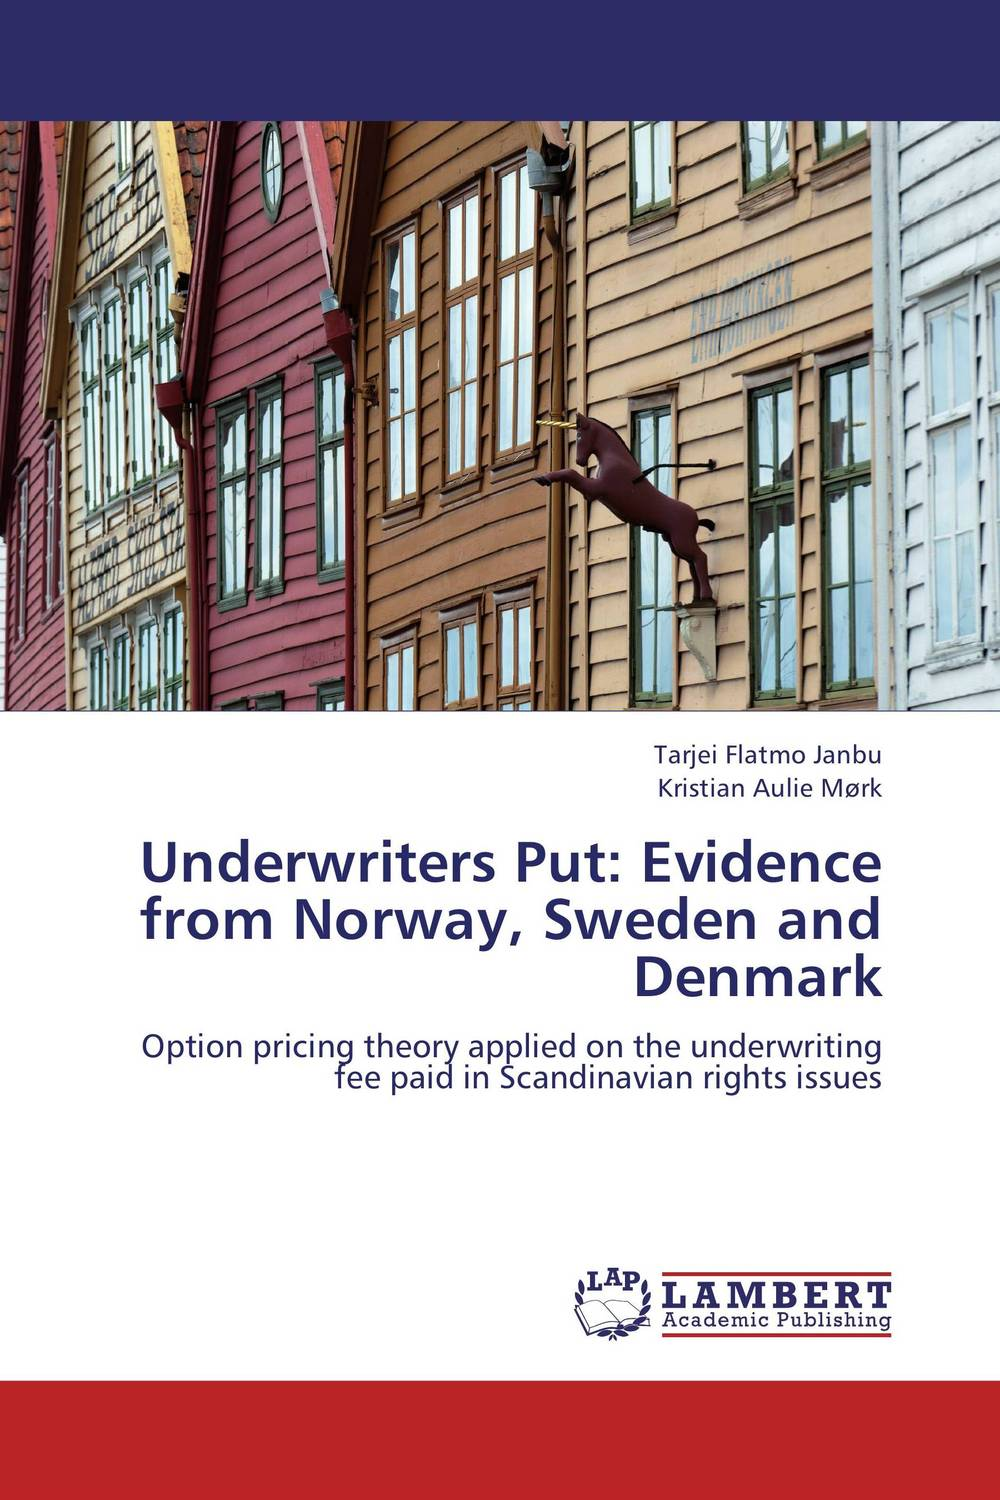 Underwriters Put: Evidence from Norway, Sweden and Denmark